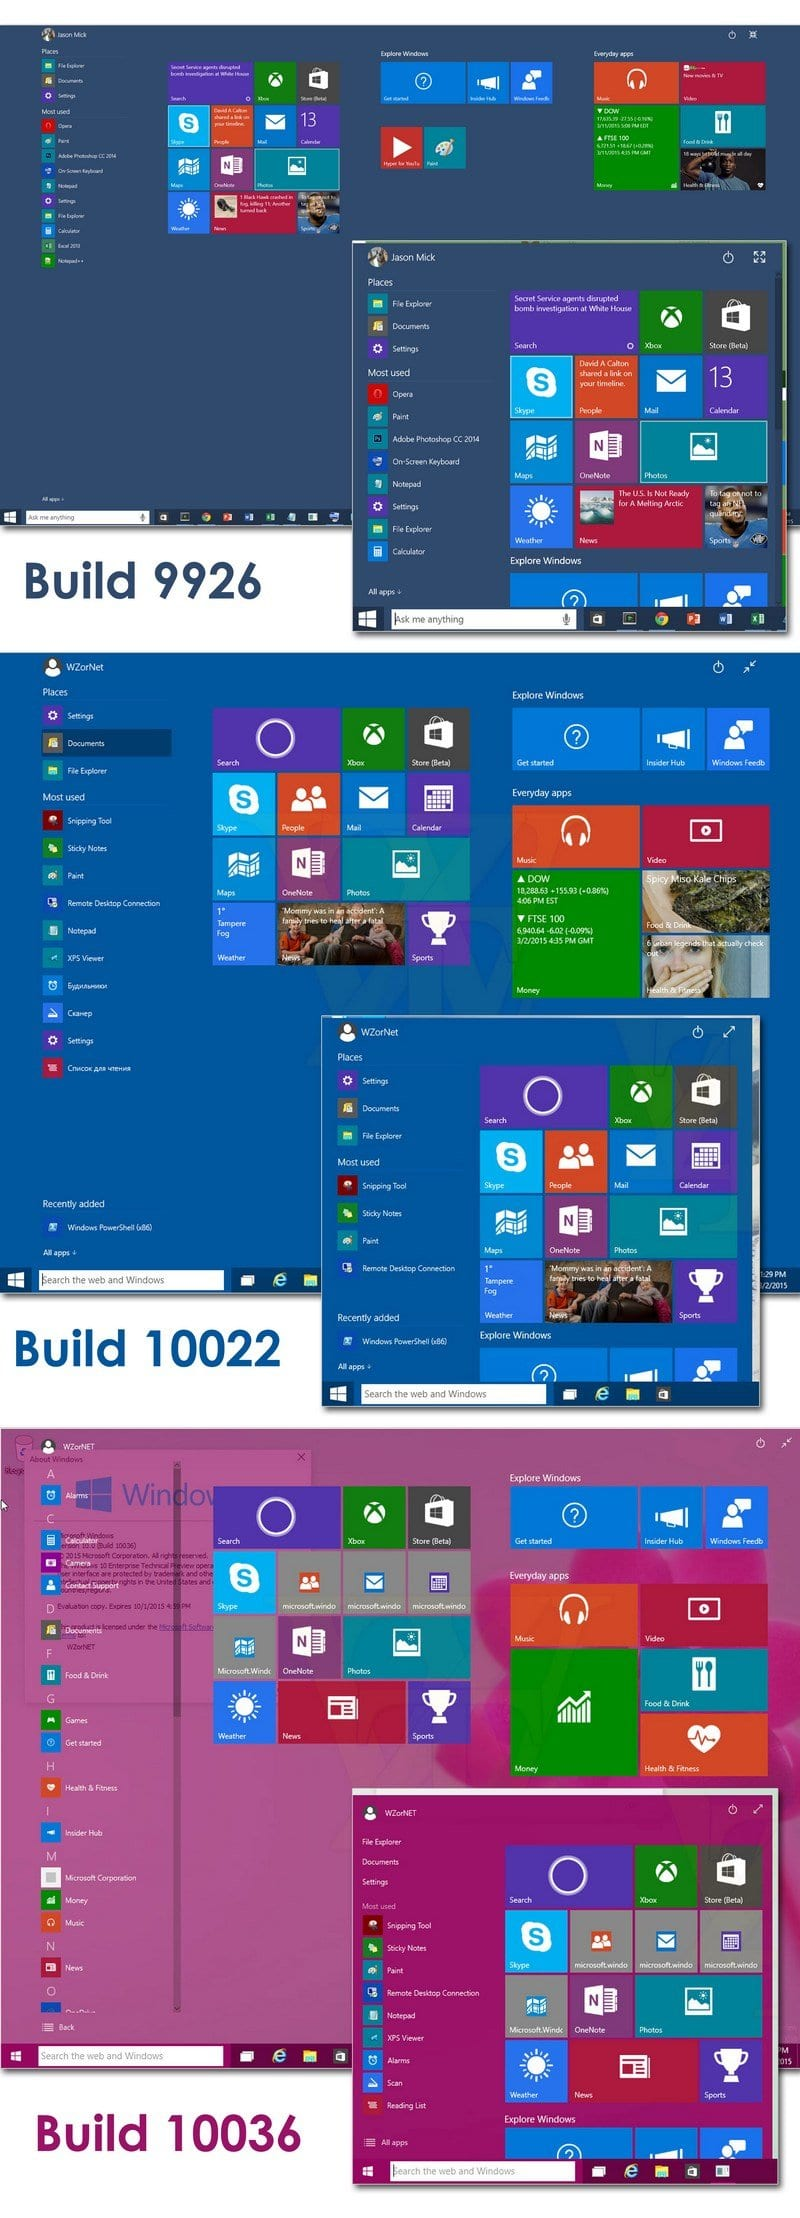 Comparison of Windows 10 Start Menu in different builds